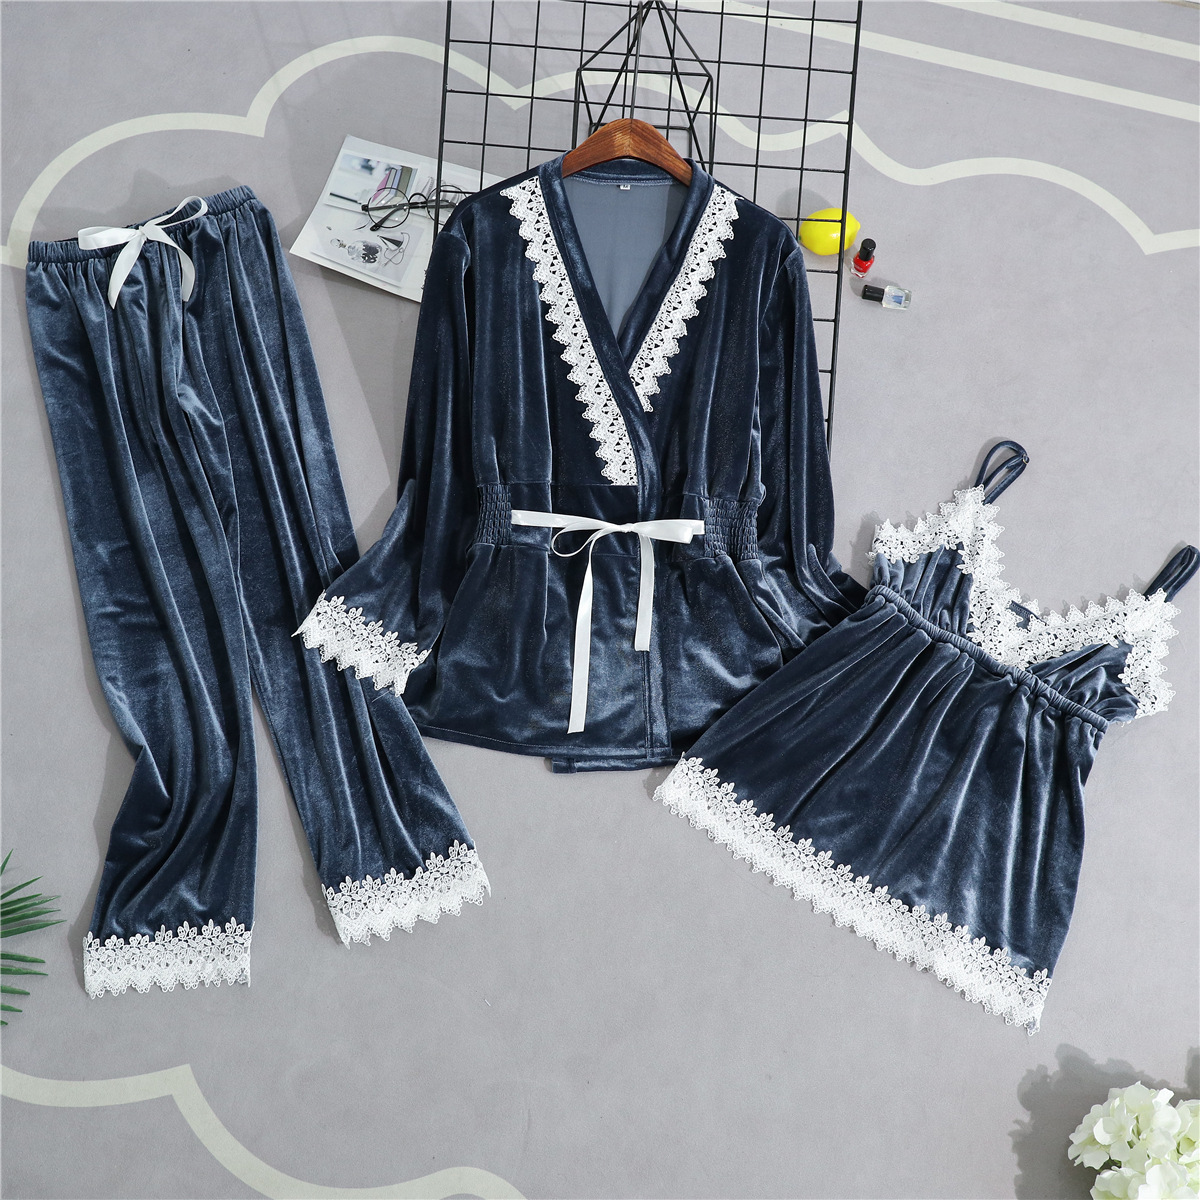 Velour Woman Home Wear Pajamas 3PC Strap Top Pants Suit Sleepwear Sets Nightgown Sexy Kimono Sleep Robe Bath Gown Nightdress